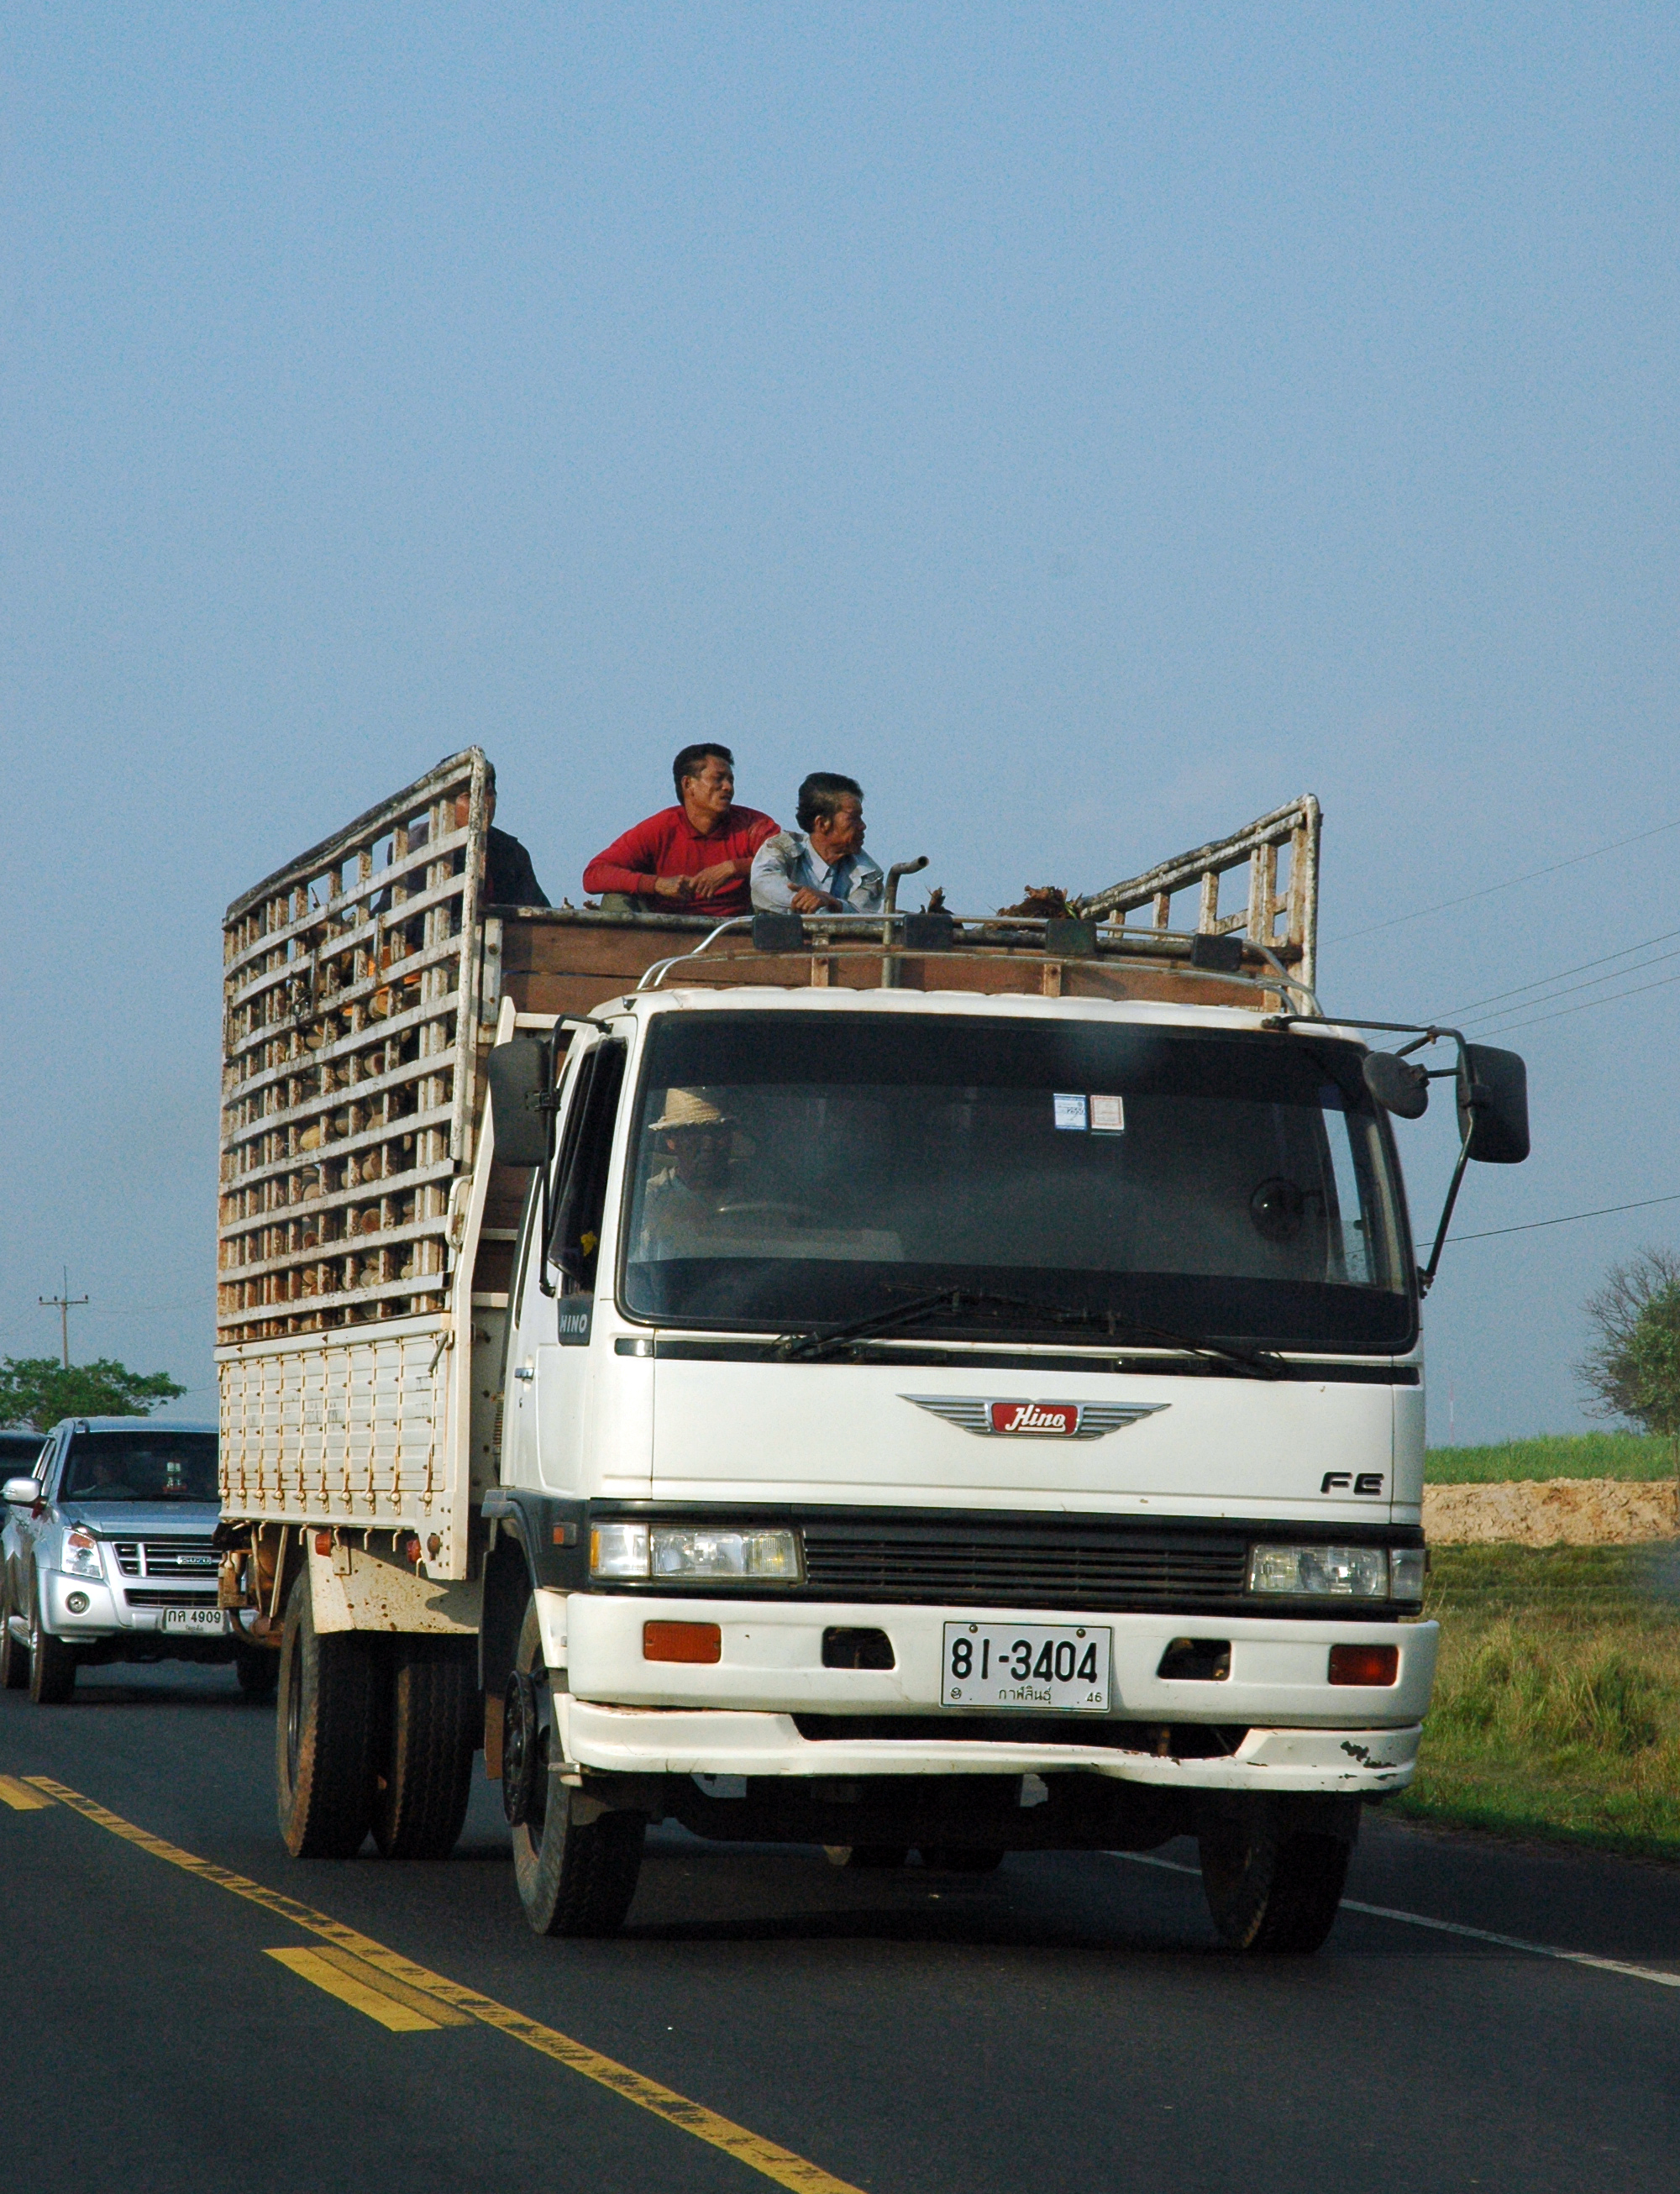 Kalasin Thailand  City new picture : Hino Truck on Highway Kalasin, Thailand Wikimedia Commons